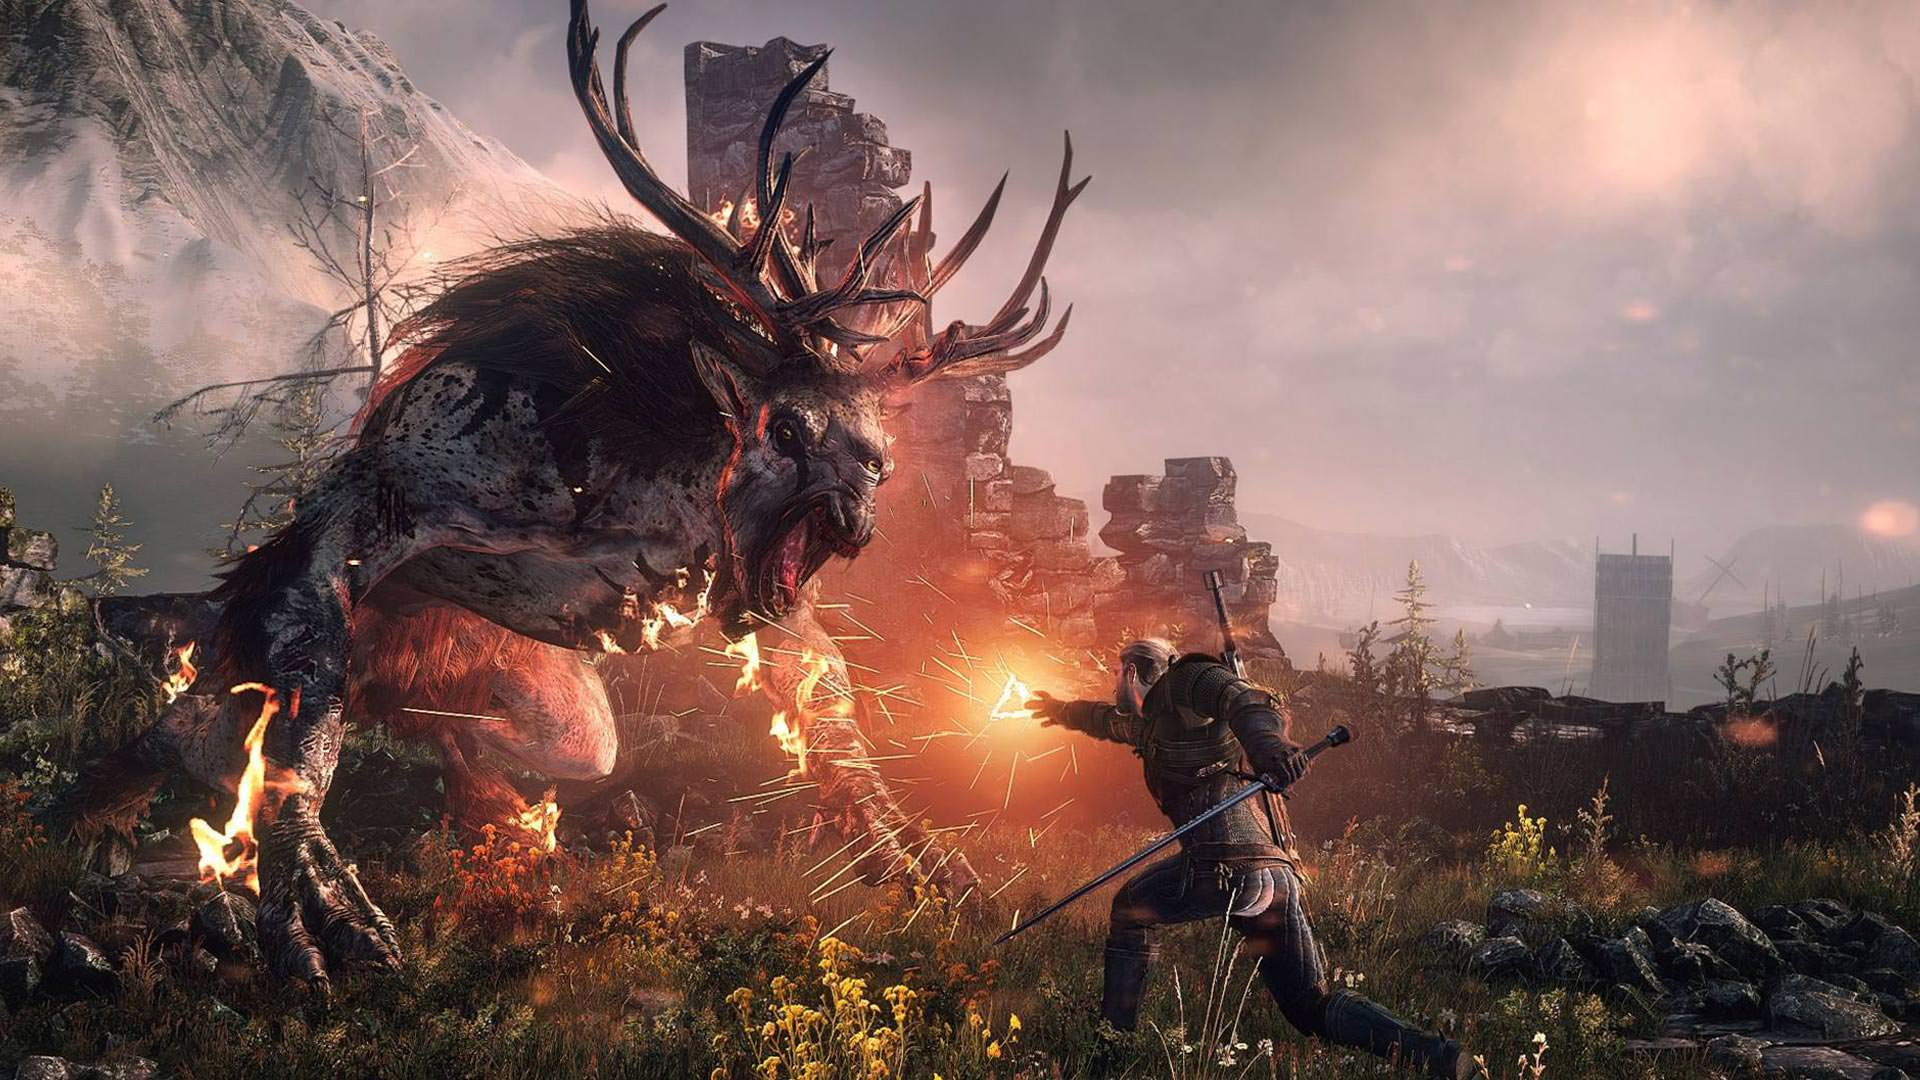 The-Witcher-3-Wild-Hunt-Killing-Monsters